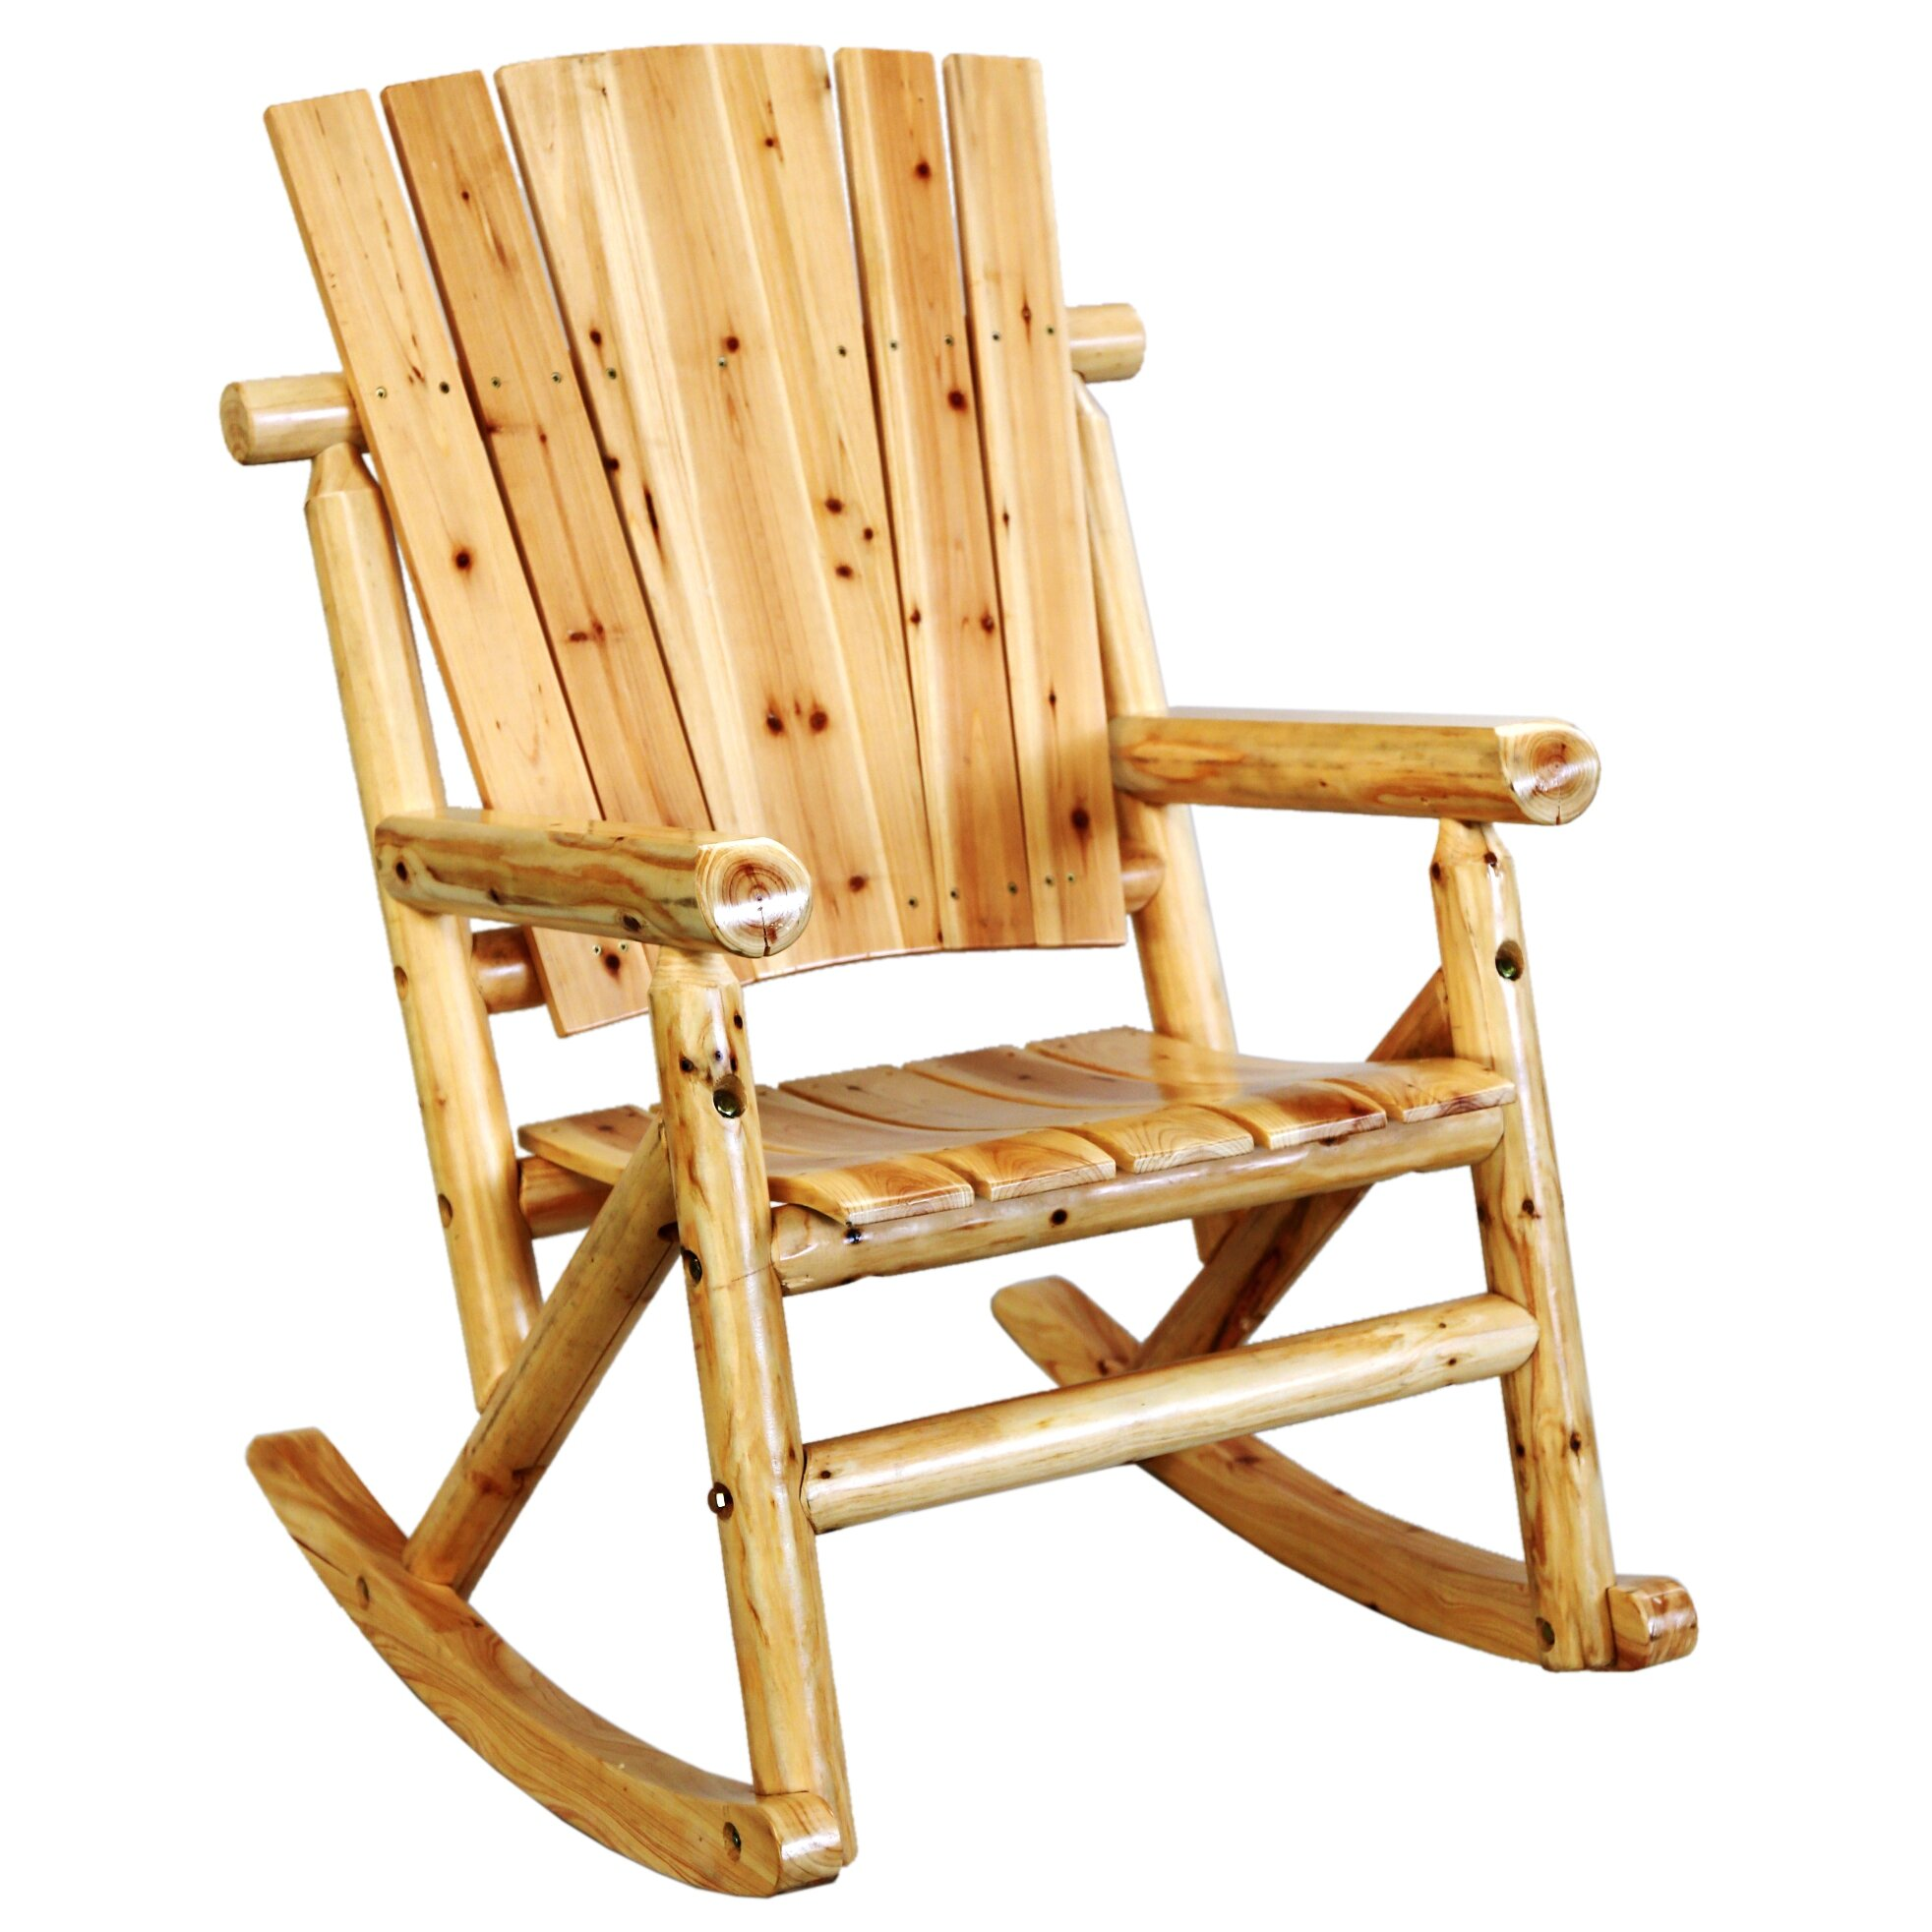 LeighCountry Aspen Single Rocking Chair II Reviews – Aspen Chair